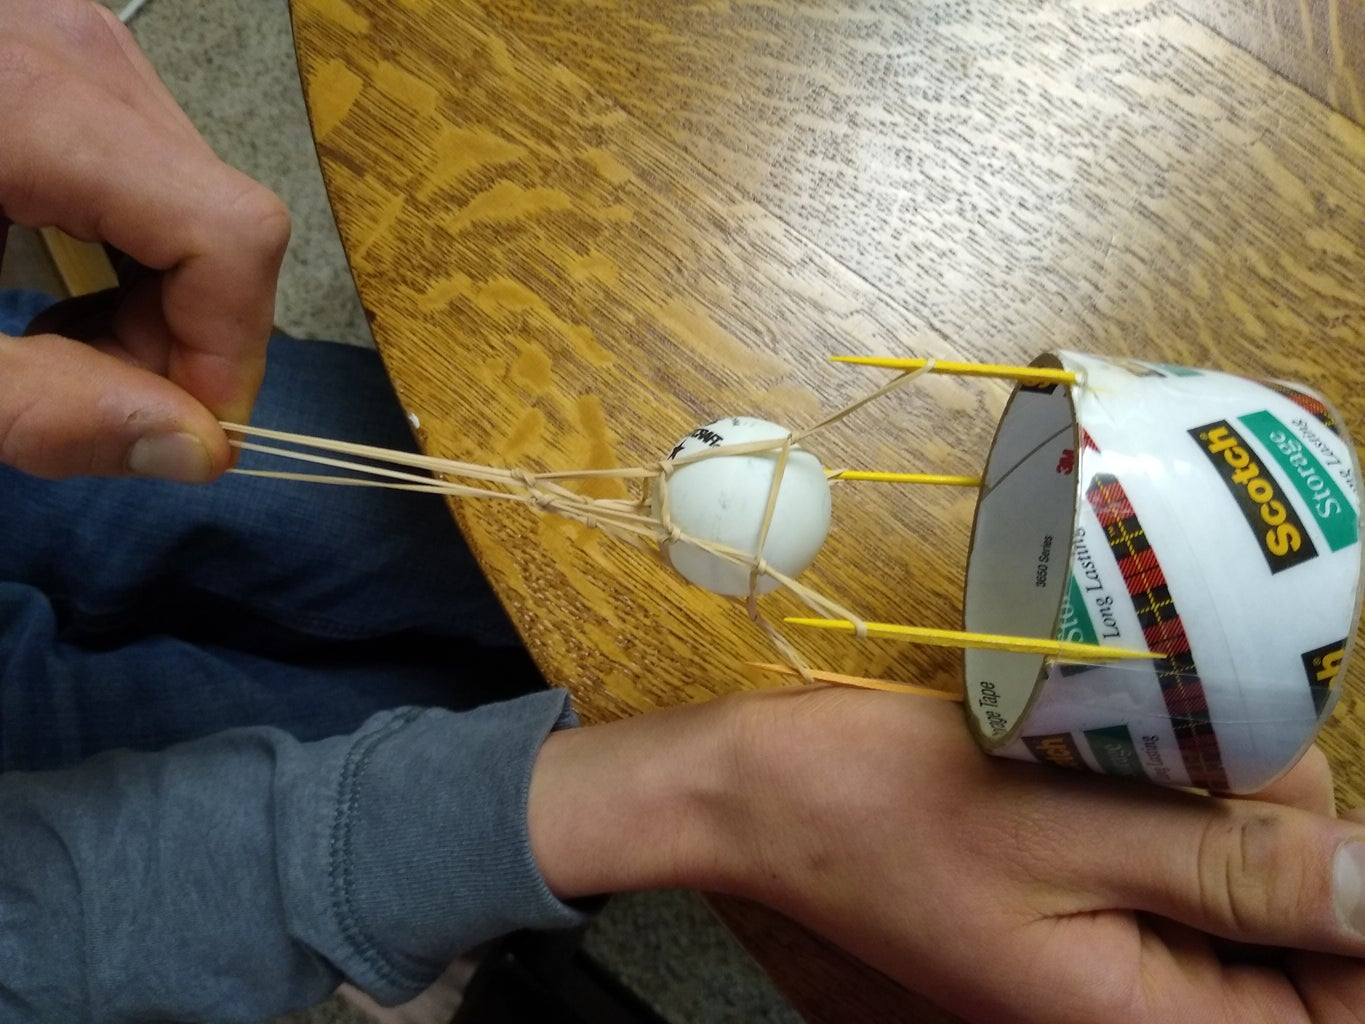 Rubber Band Ping Pong Launcher